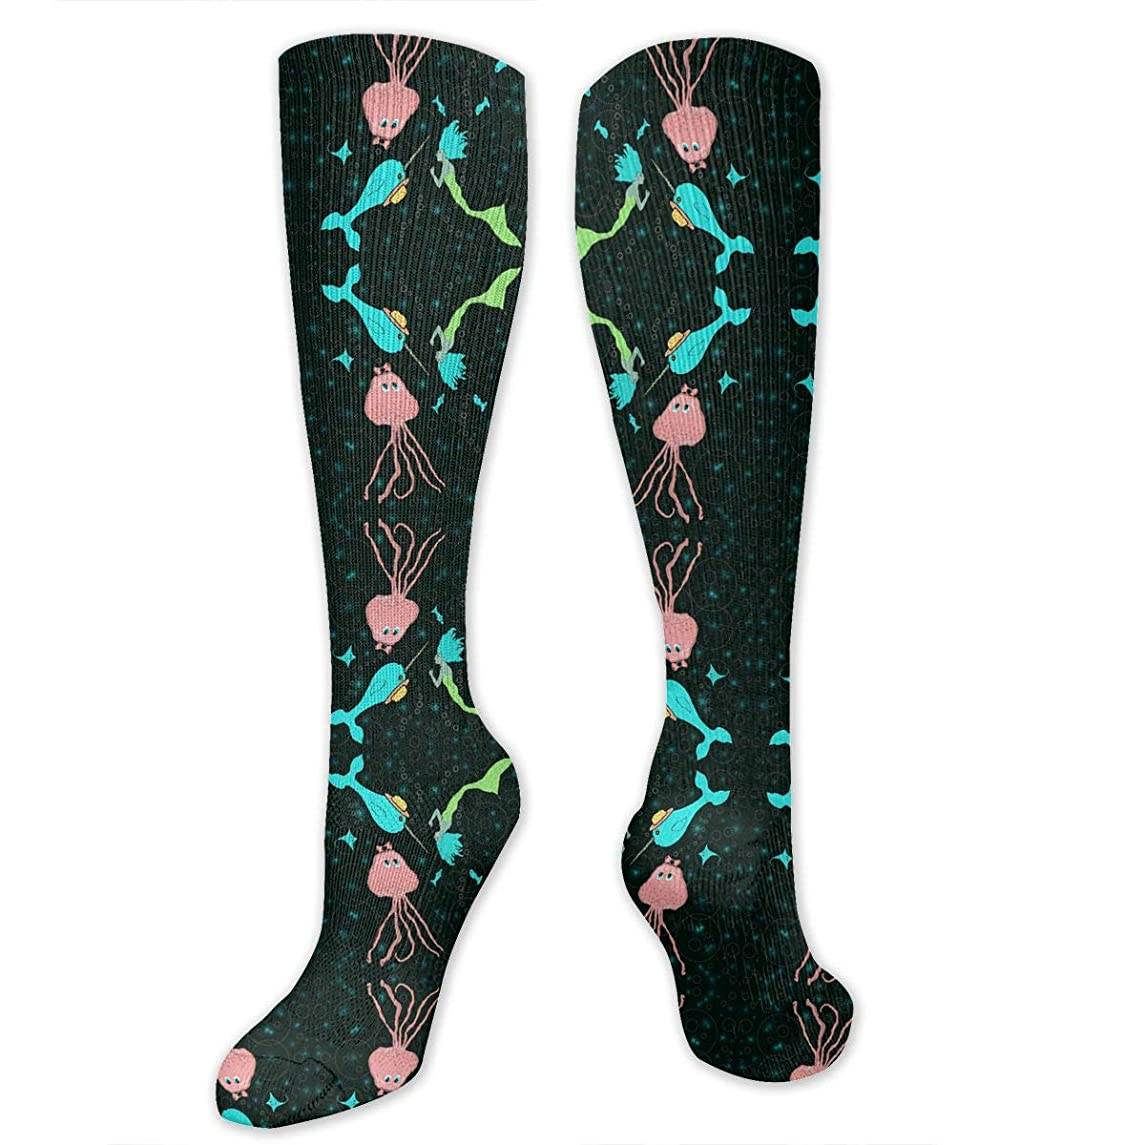 Avazz Kawaii Mermaid Fantasy with Narwal and Squid Compression Socks for Men & Women - Best for Running Athletic Pregnancy and Travel